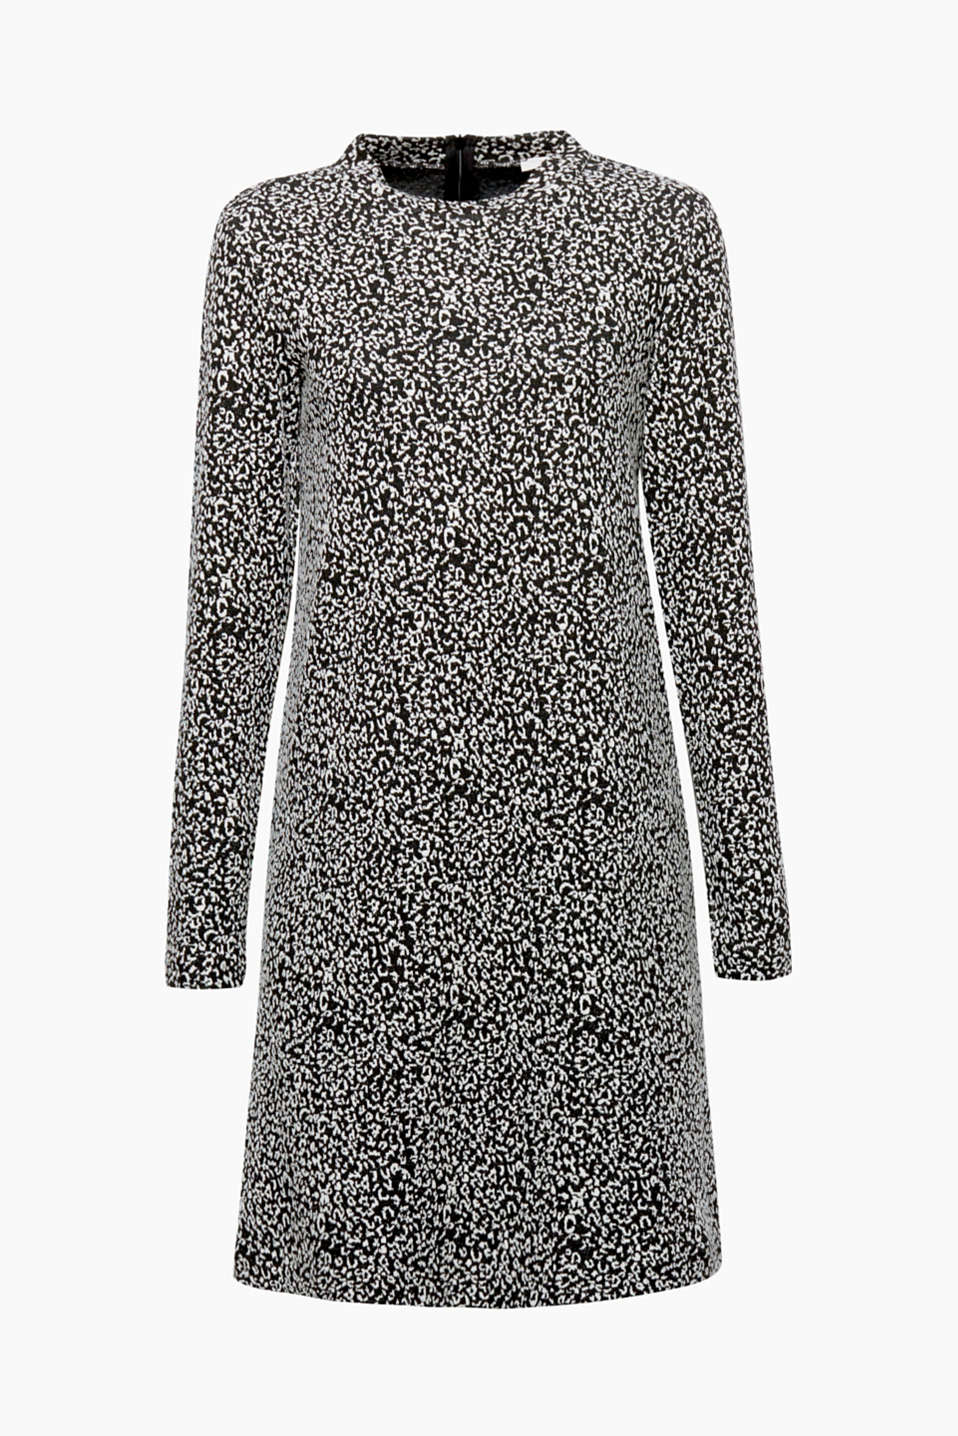 Latest leopard look: the soft stretch jersey shows off the jacquard pattern on this A-line dress to absolute perfection!